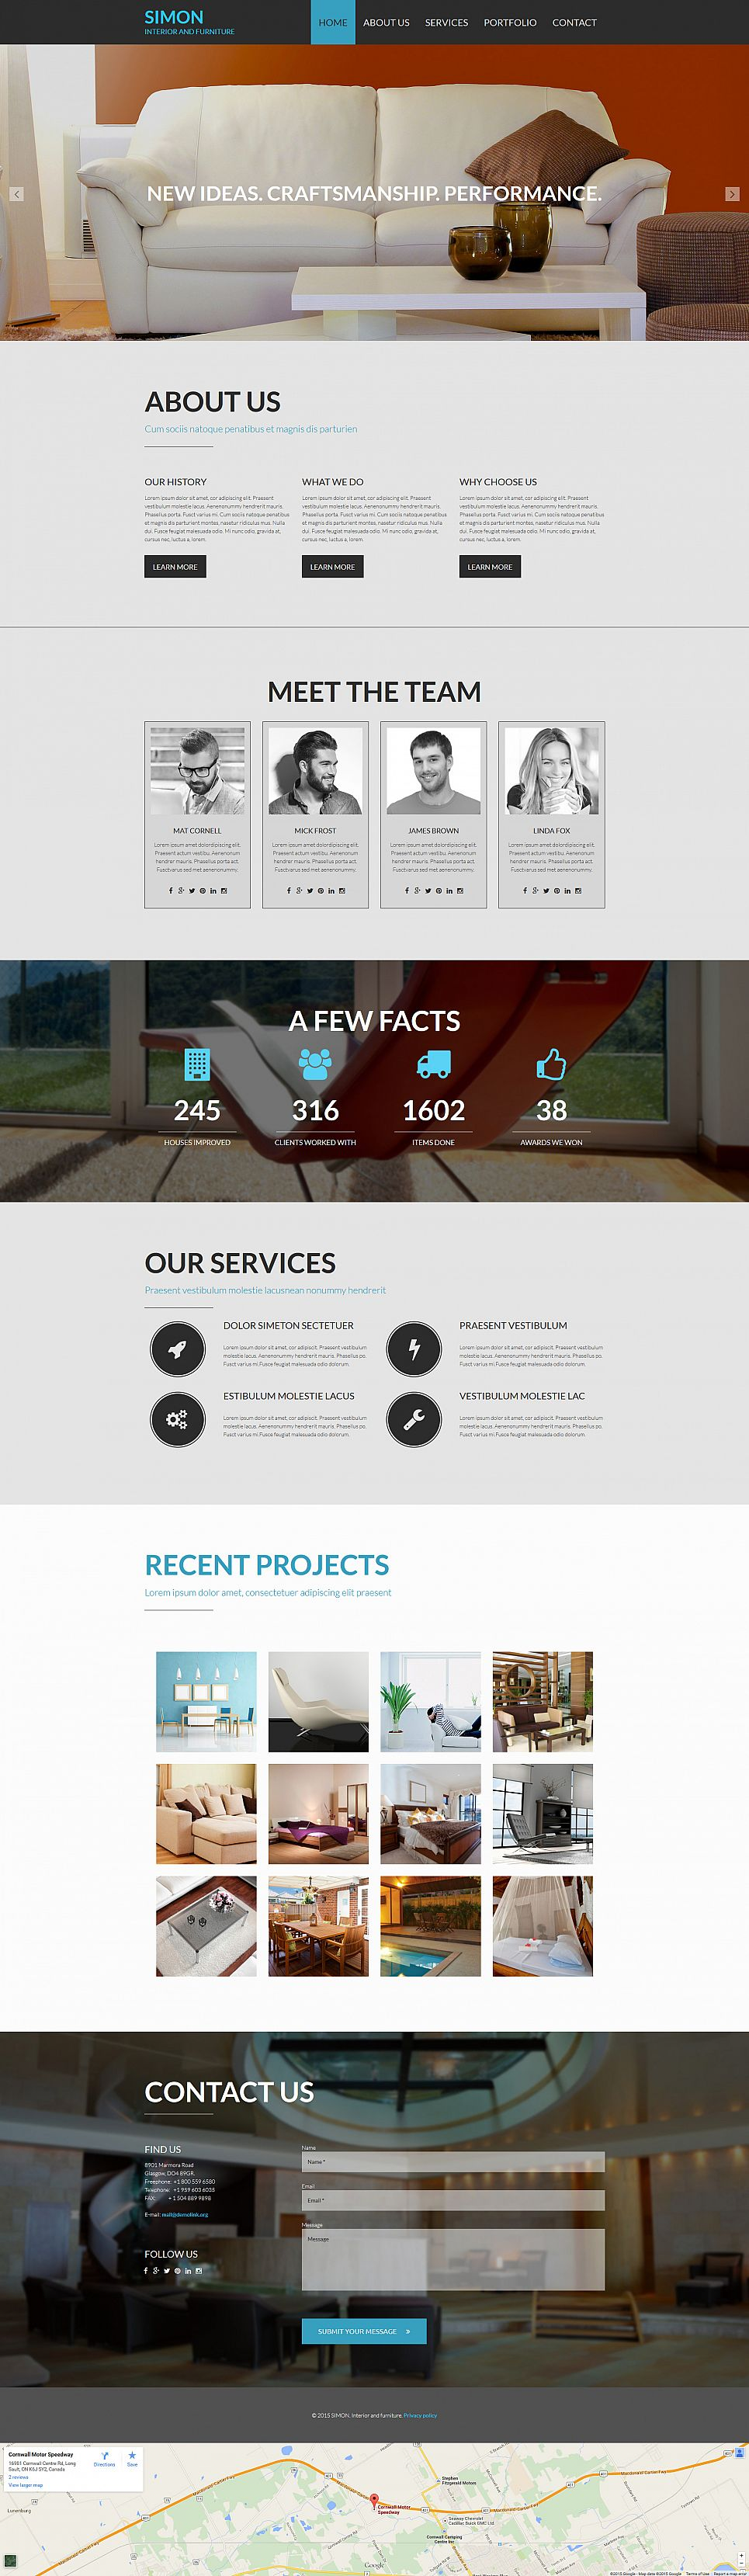 Home Interior Website Design - image